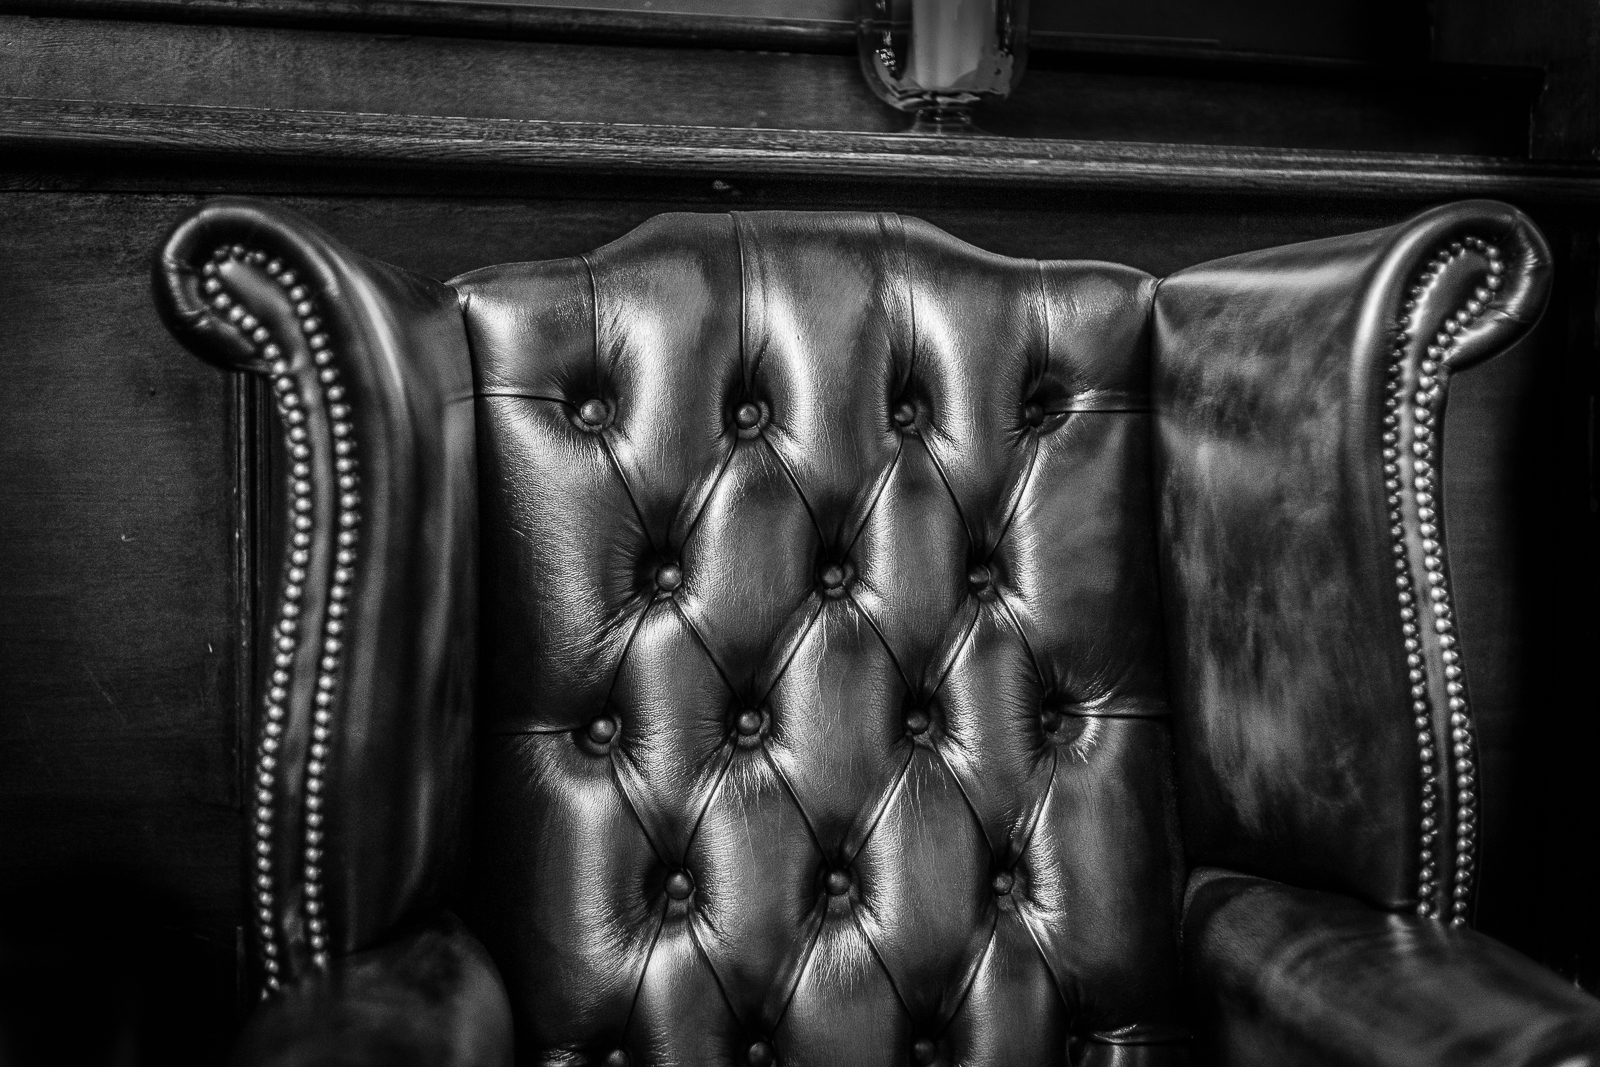 Chair in Old bank of England Pub 03.2014